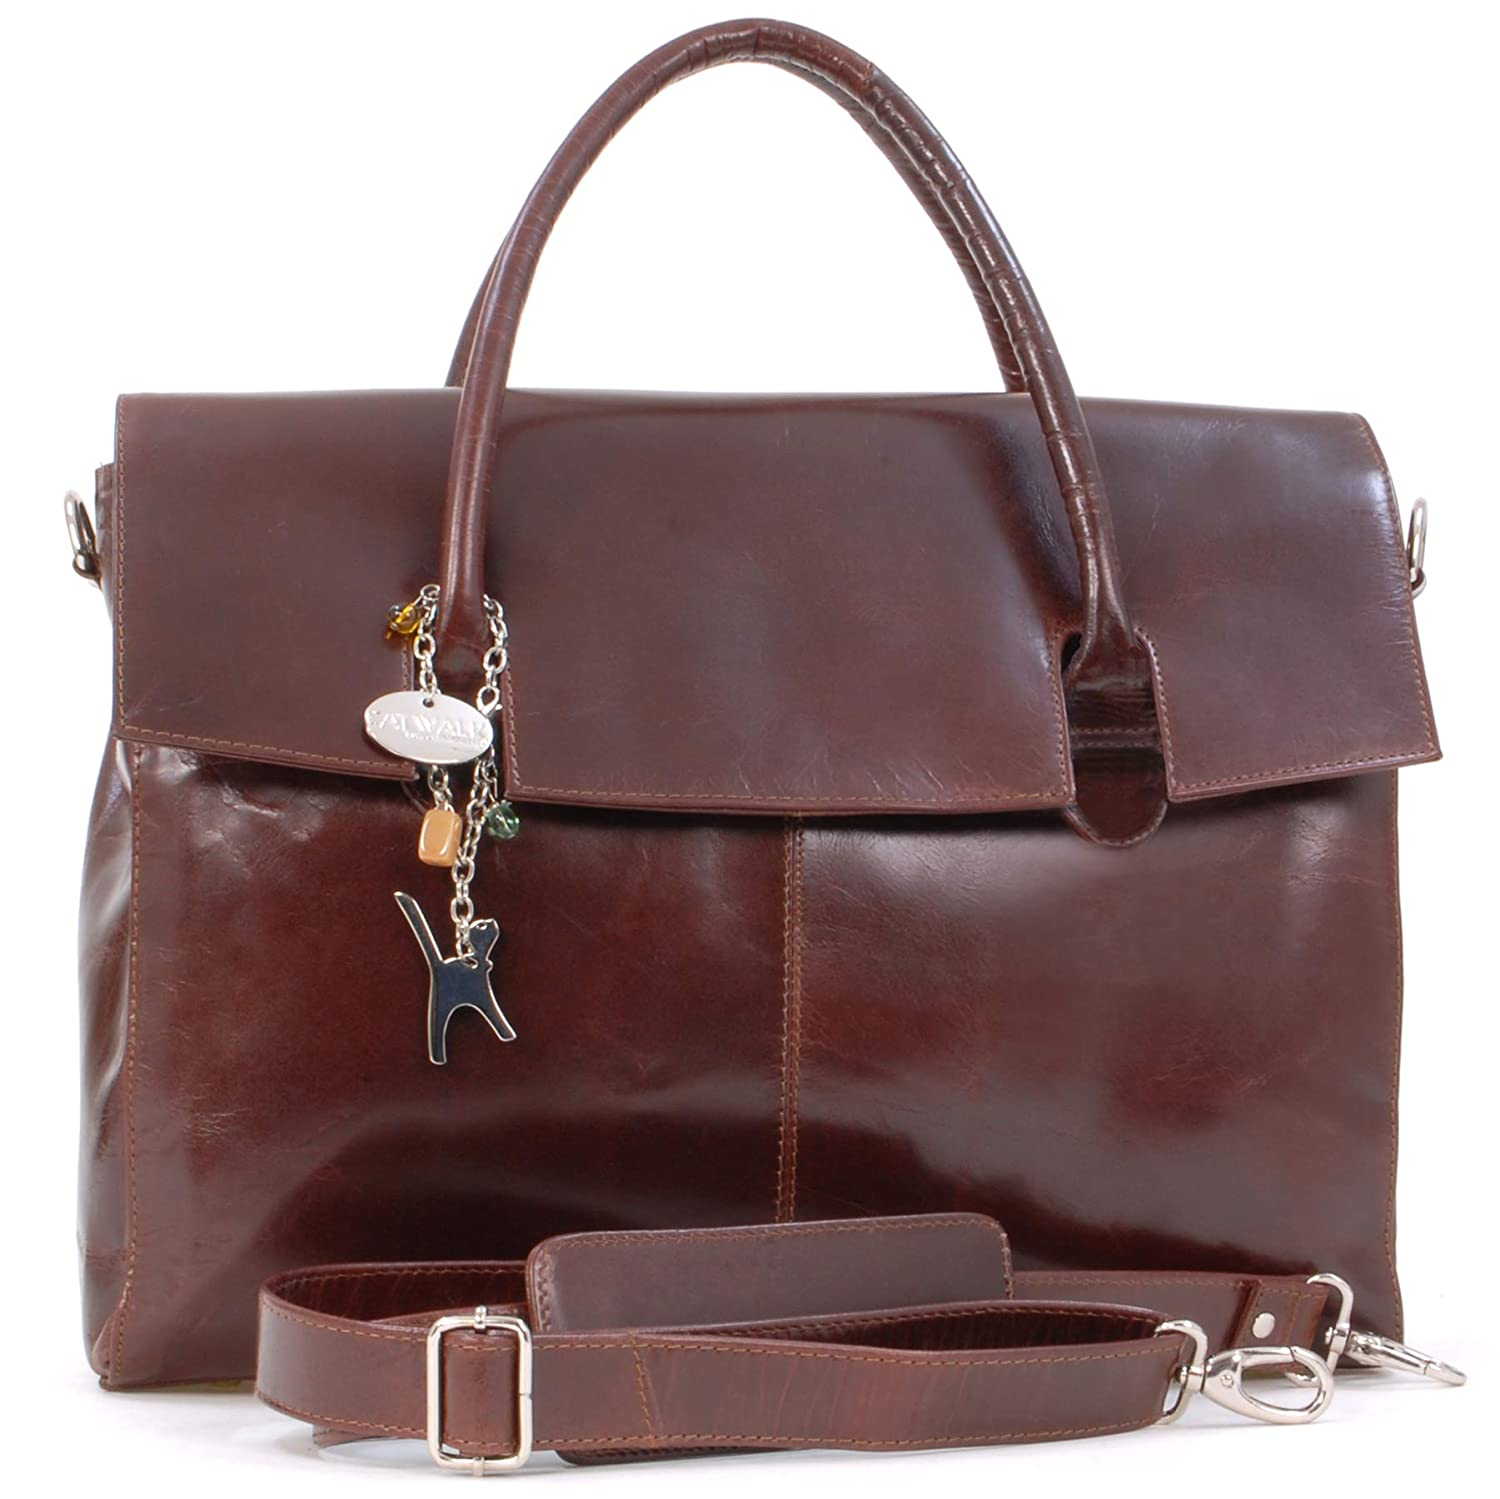 Catwalk Collection Over-Sized Laptop Bag - Vintage Leather - Helena   Amazon.co.uk  Shoes   Bags 28cd99ad20ba9